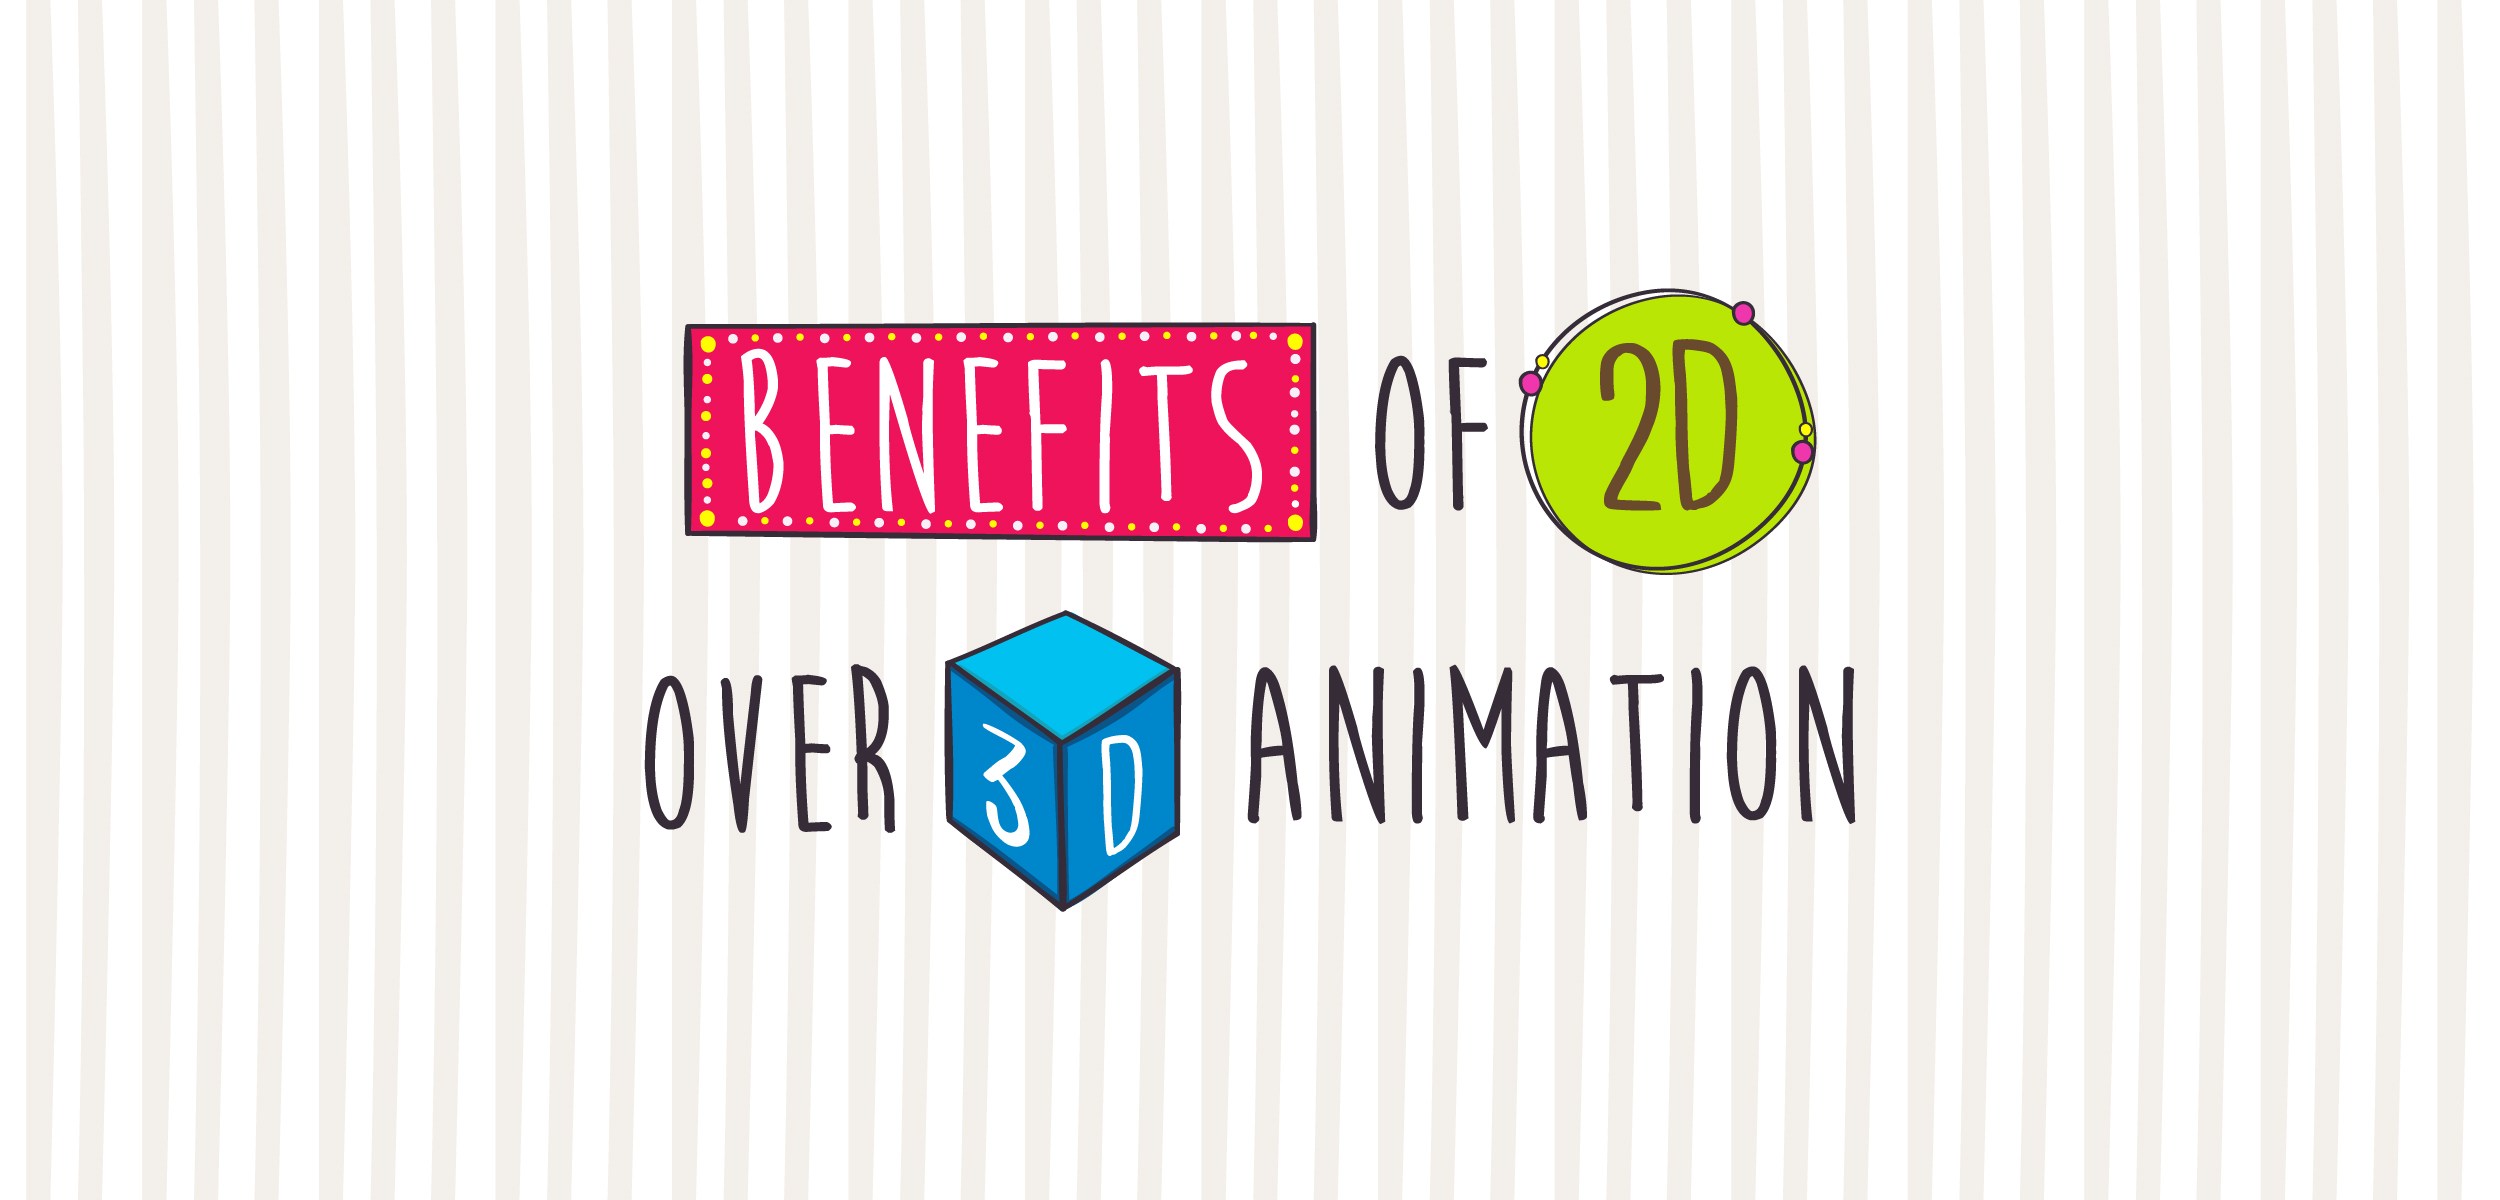 Benefits of 2d Over 3d Animation